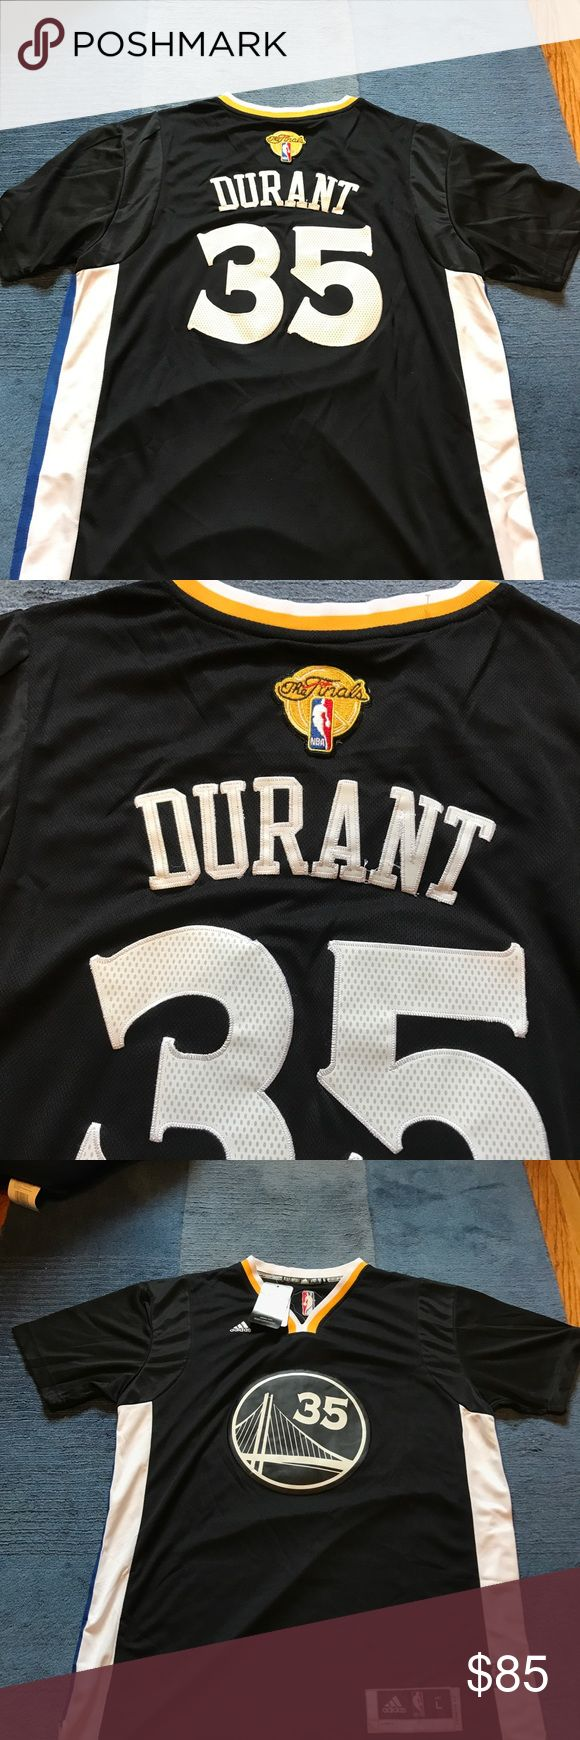 NWT Kevin Durant NBA FINALS Warriors Jersey Sleeve This jersey will NOT last long on here. Brand new with tags Swingman Kevin Durant NBA FINALS sleeved Golden State Warriors jersey!  Must have for any Durant fan or Warriors fan!  Size Large but can fit a Medium as well!  Always willing to negotiate and always next day shipping. adidas Other